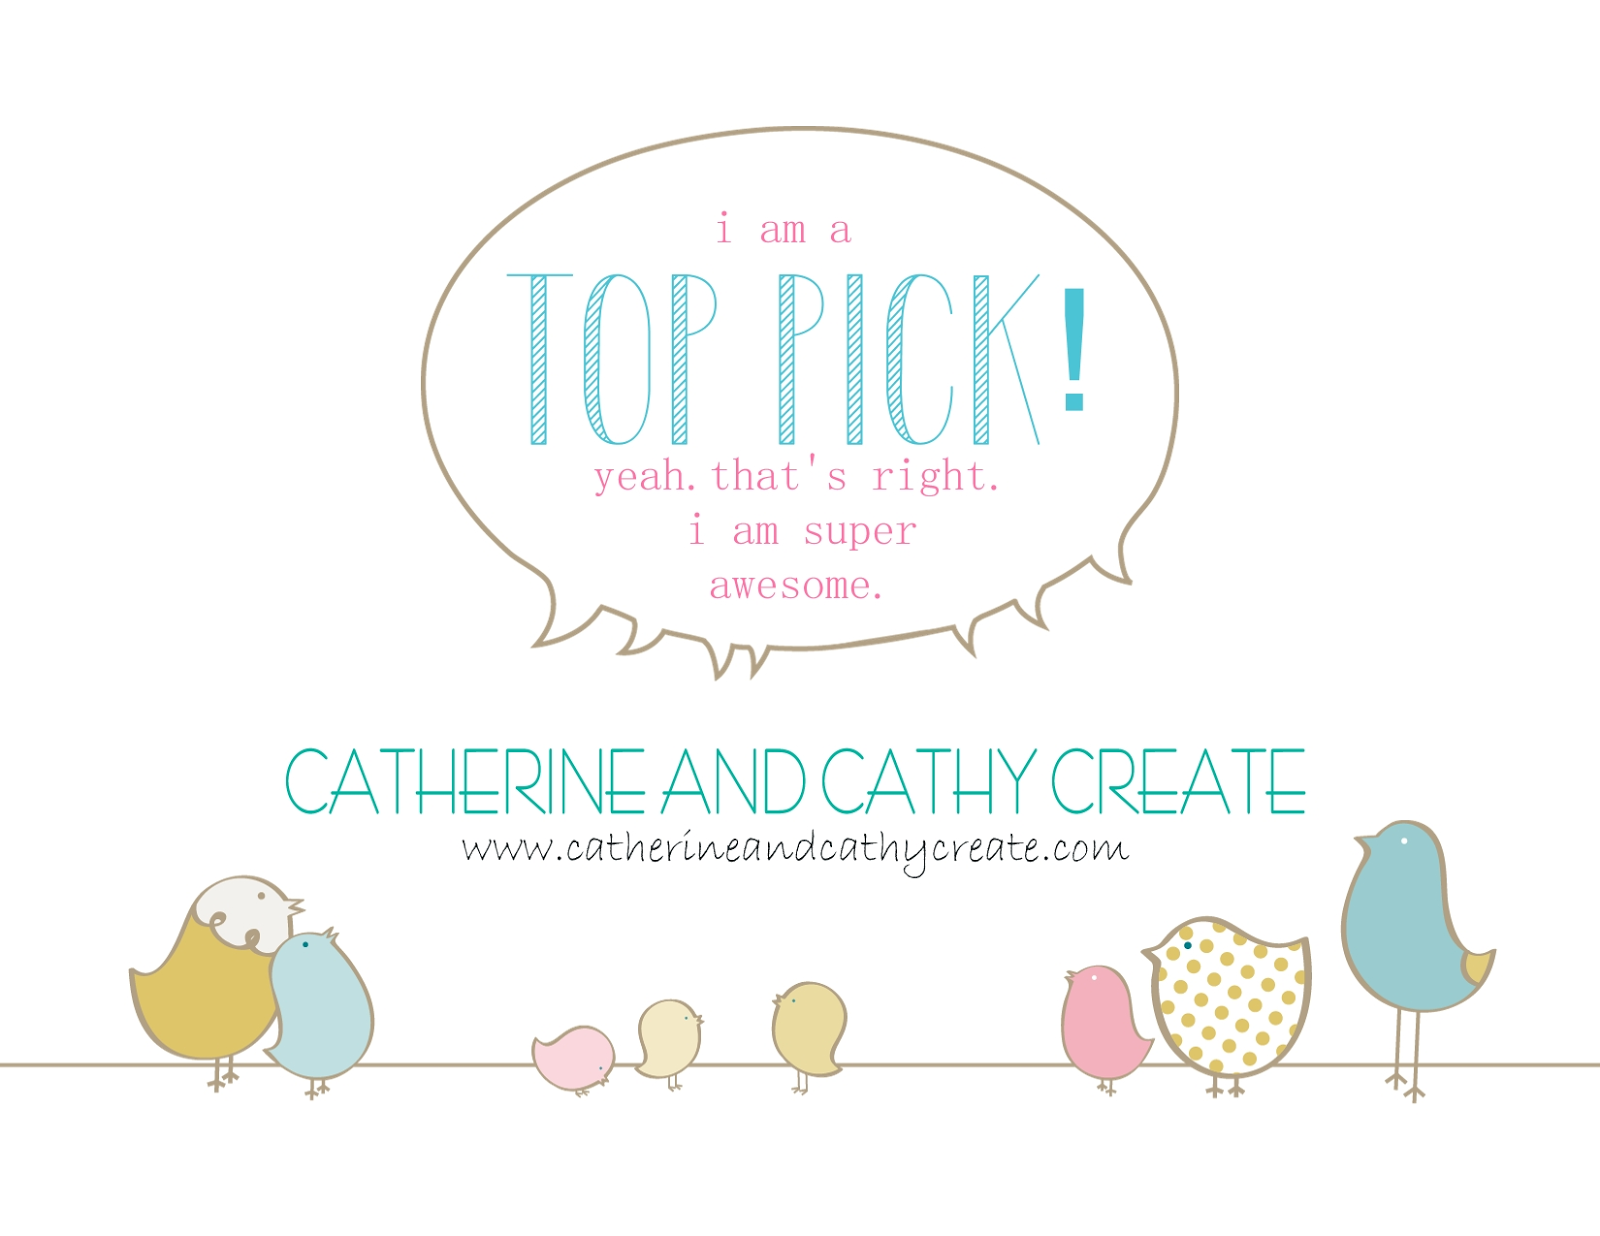 I am a Catherineandcathycreate top pick!